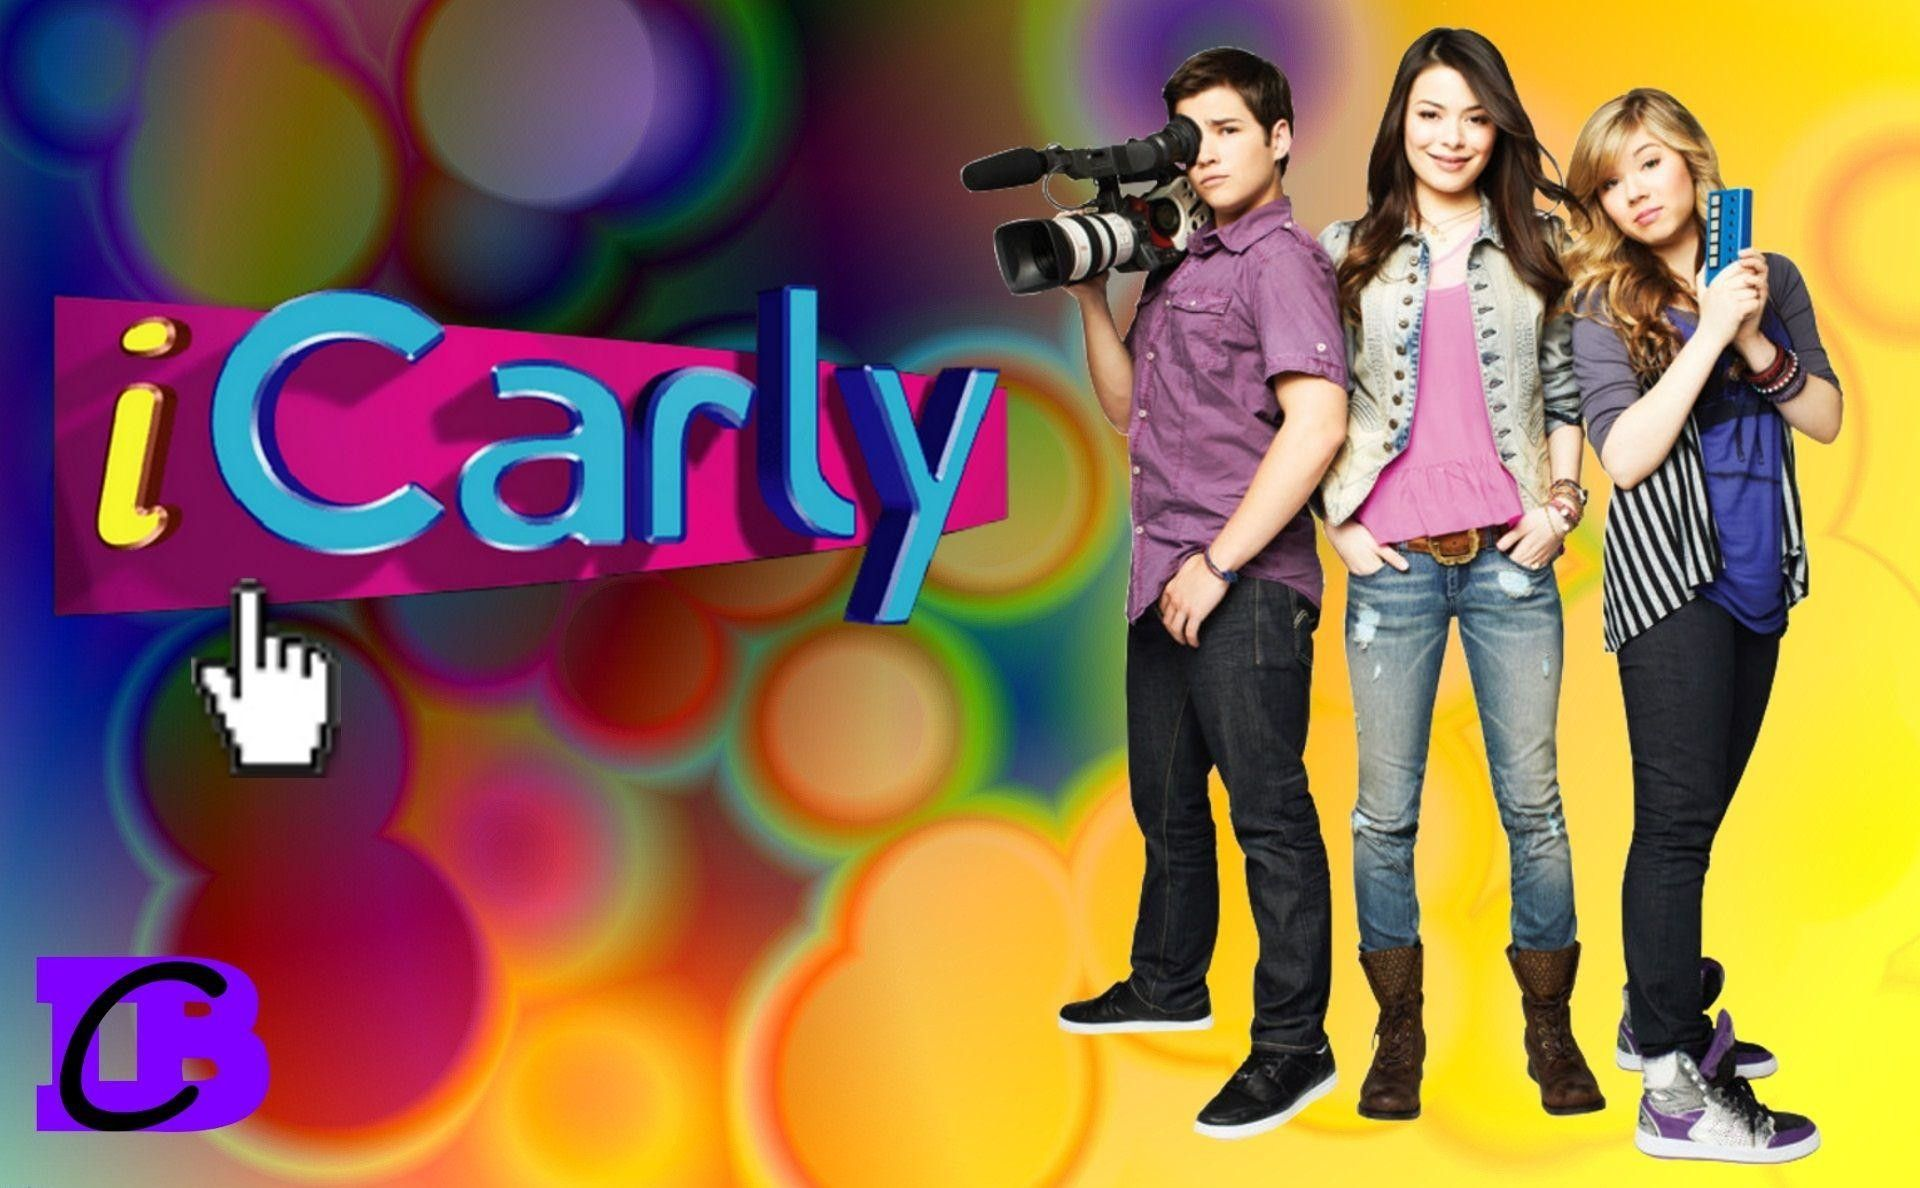 1920x1188 Icarly Wallpaper (72+ images)